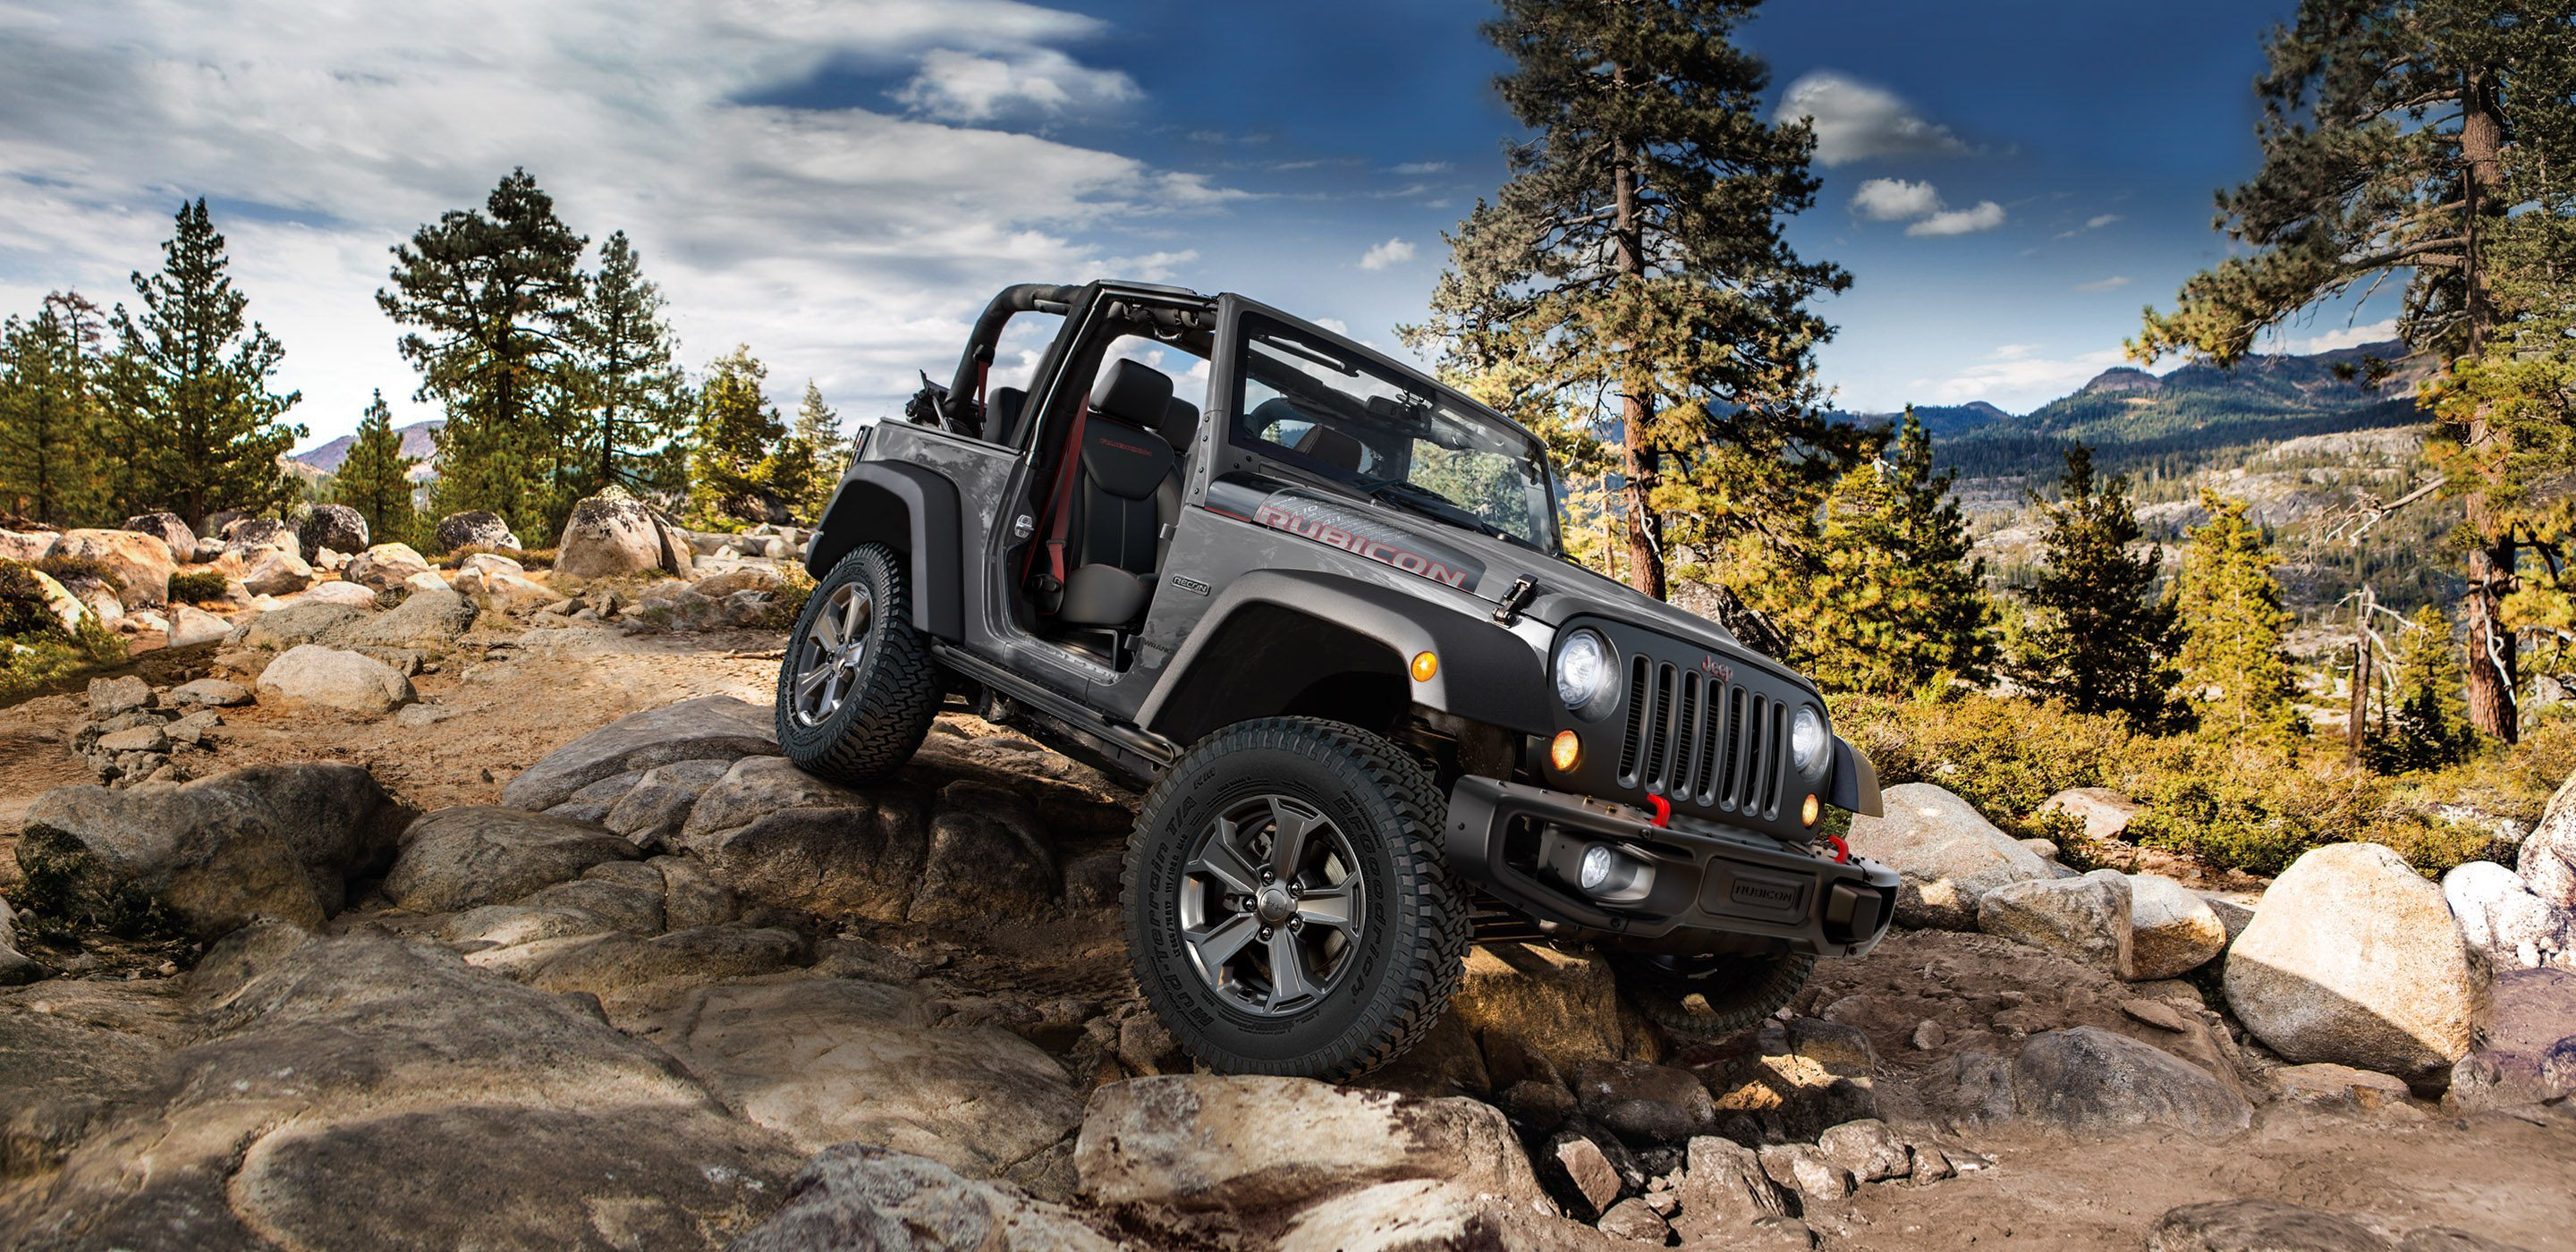 Jeep 2016 Lineup >> 2018 Jeep Wrangler JK Overview - The News Wheel